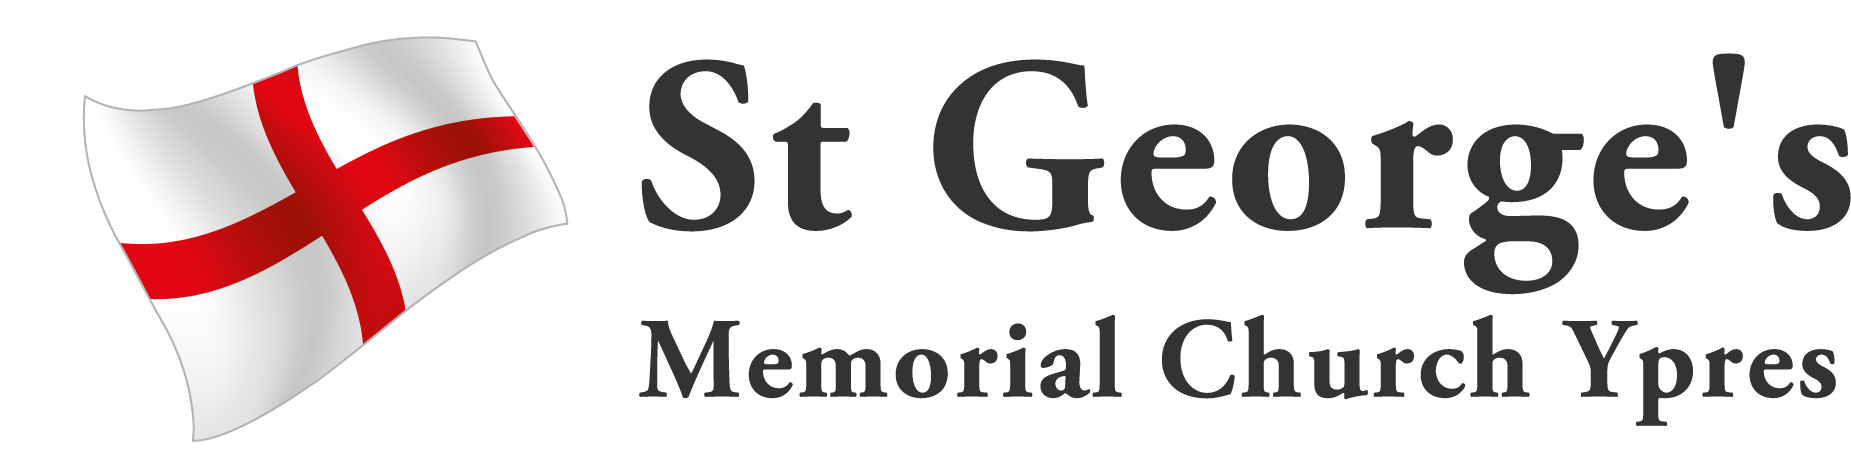 St George's Church Ypres logo